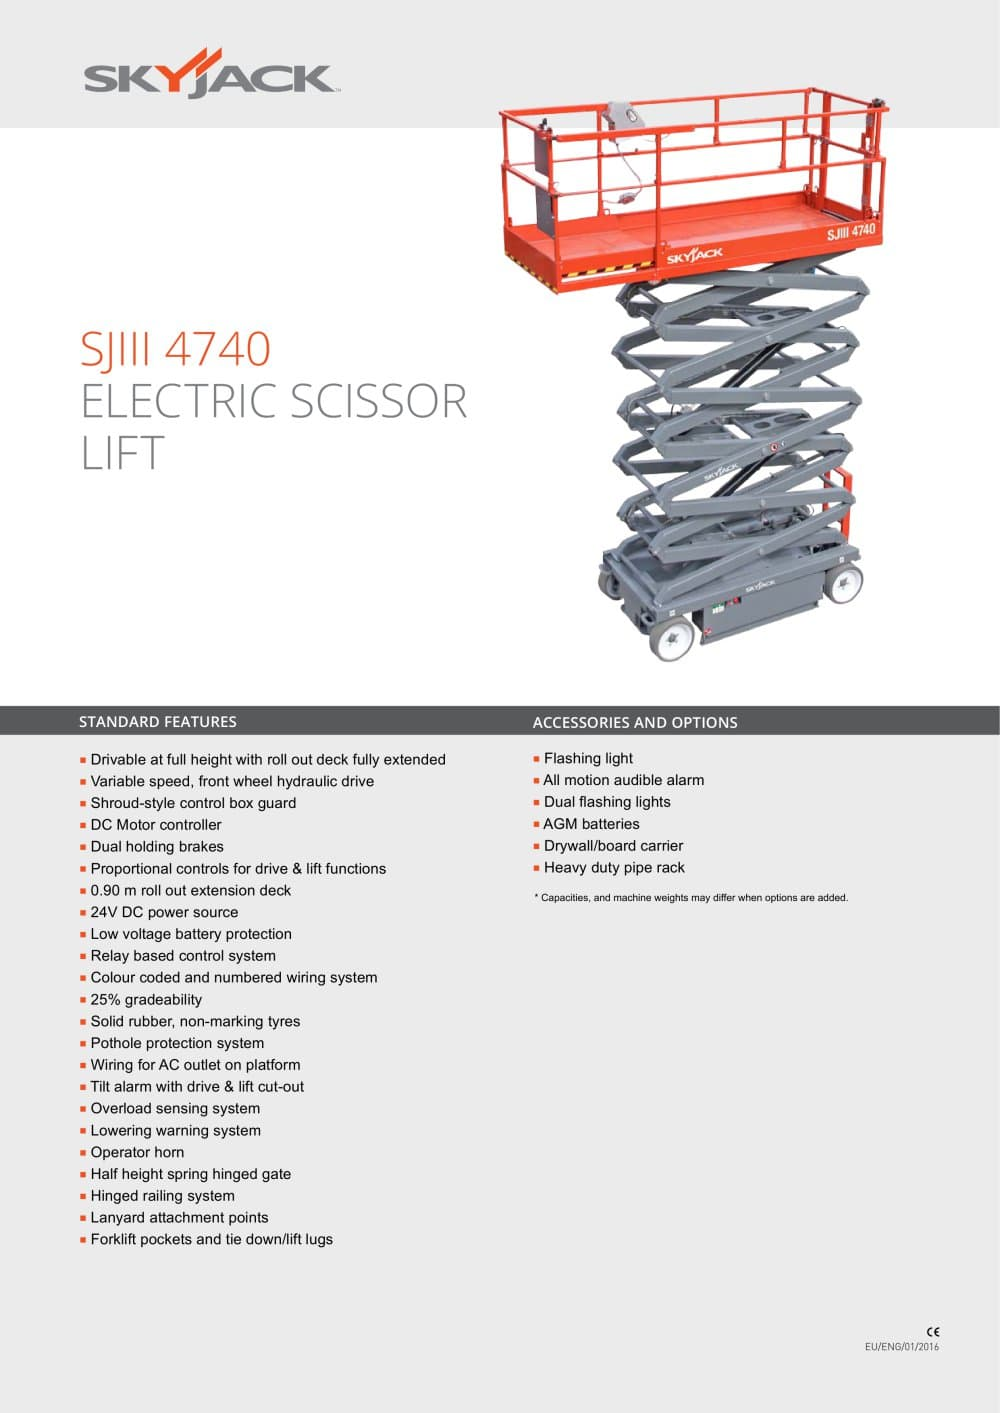 jlg wiring diagram jlg scissor lift wiring diagram jlg image wiring wiring diagram jlg wiring diagram and schematic on